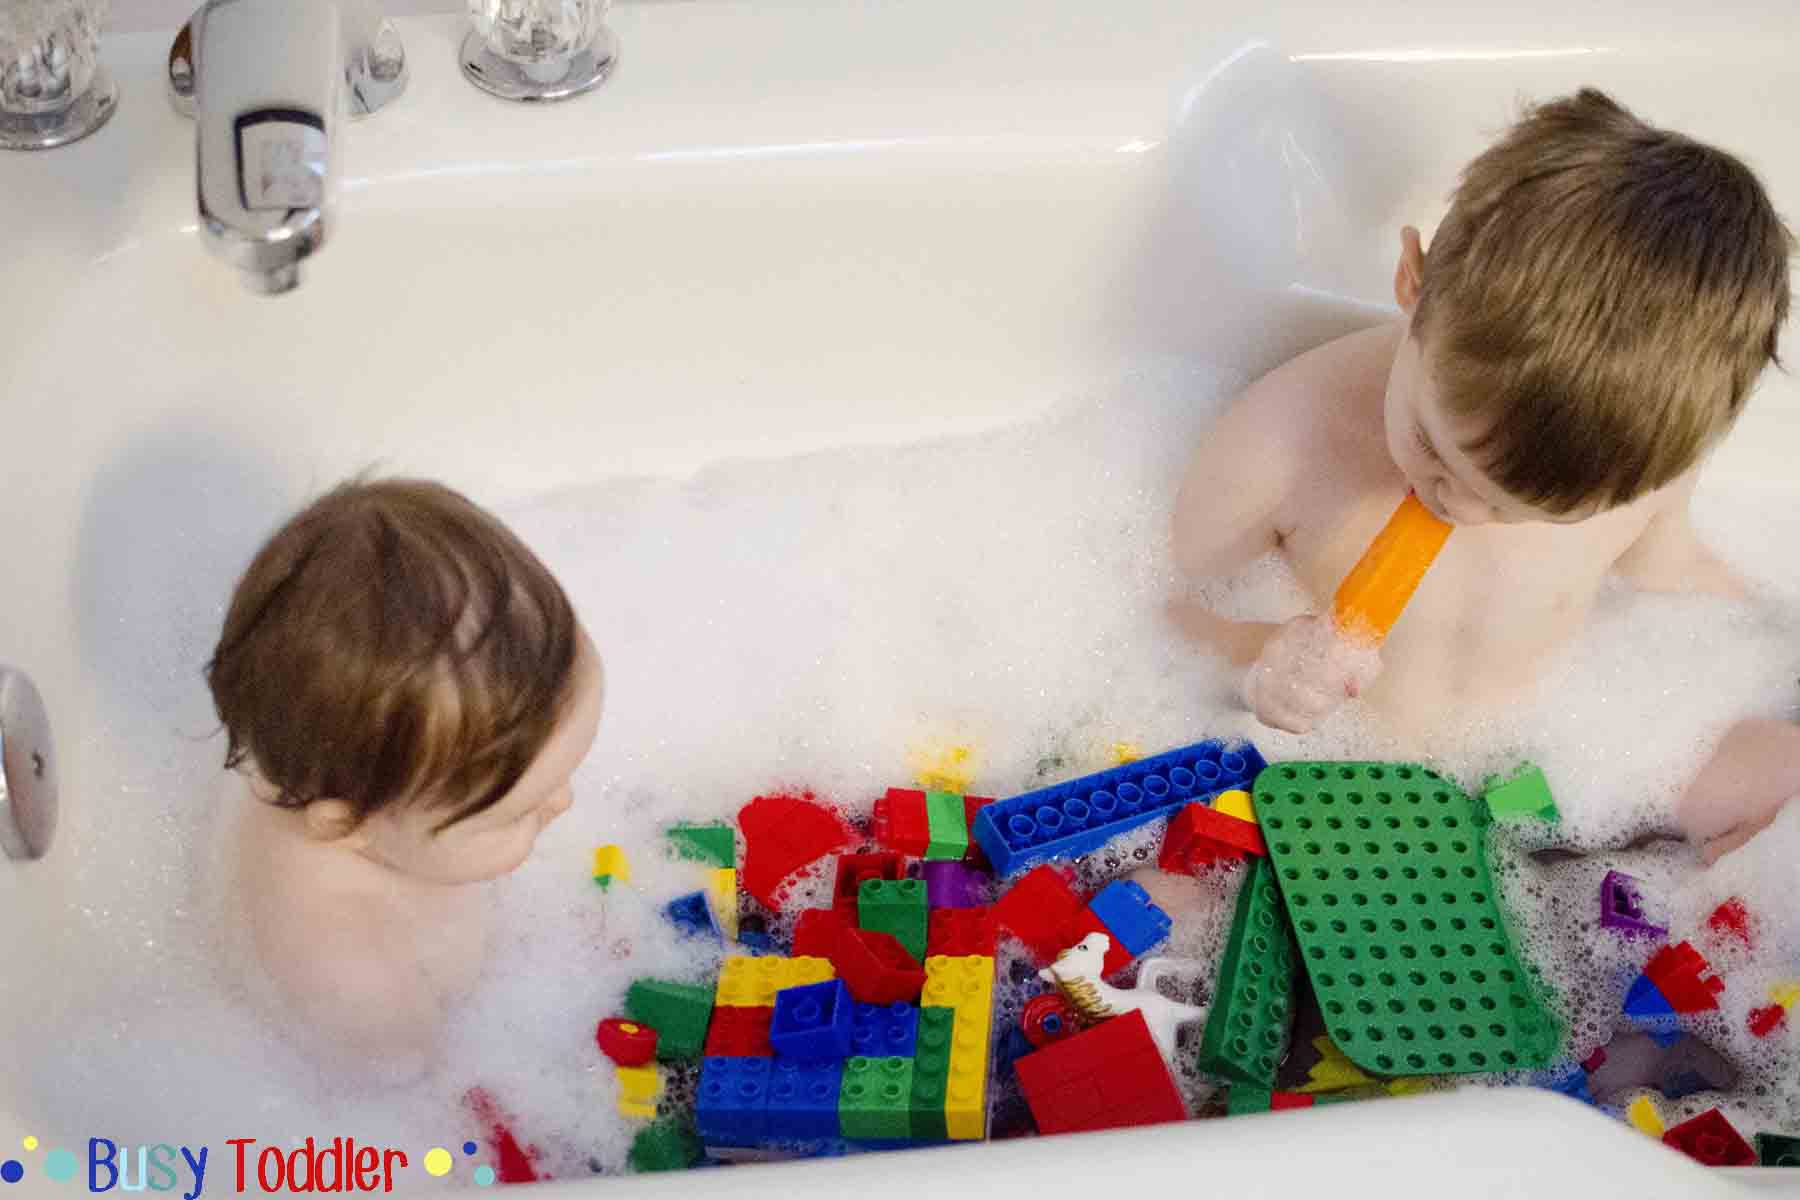 LEGO BATH: A toddler bath time activity